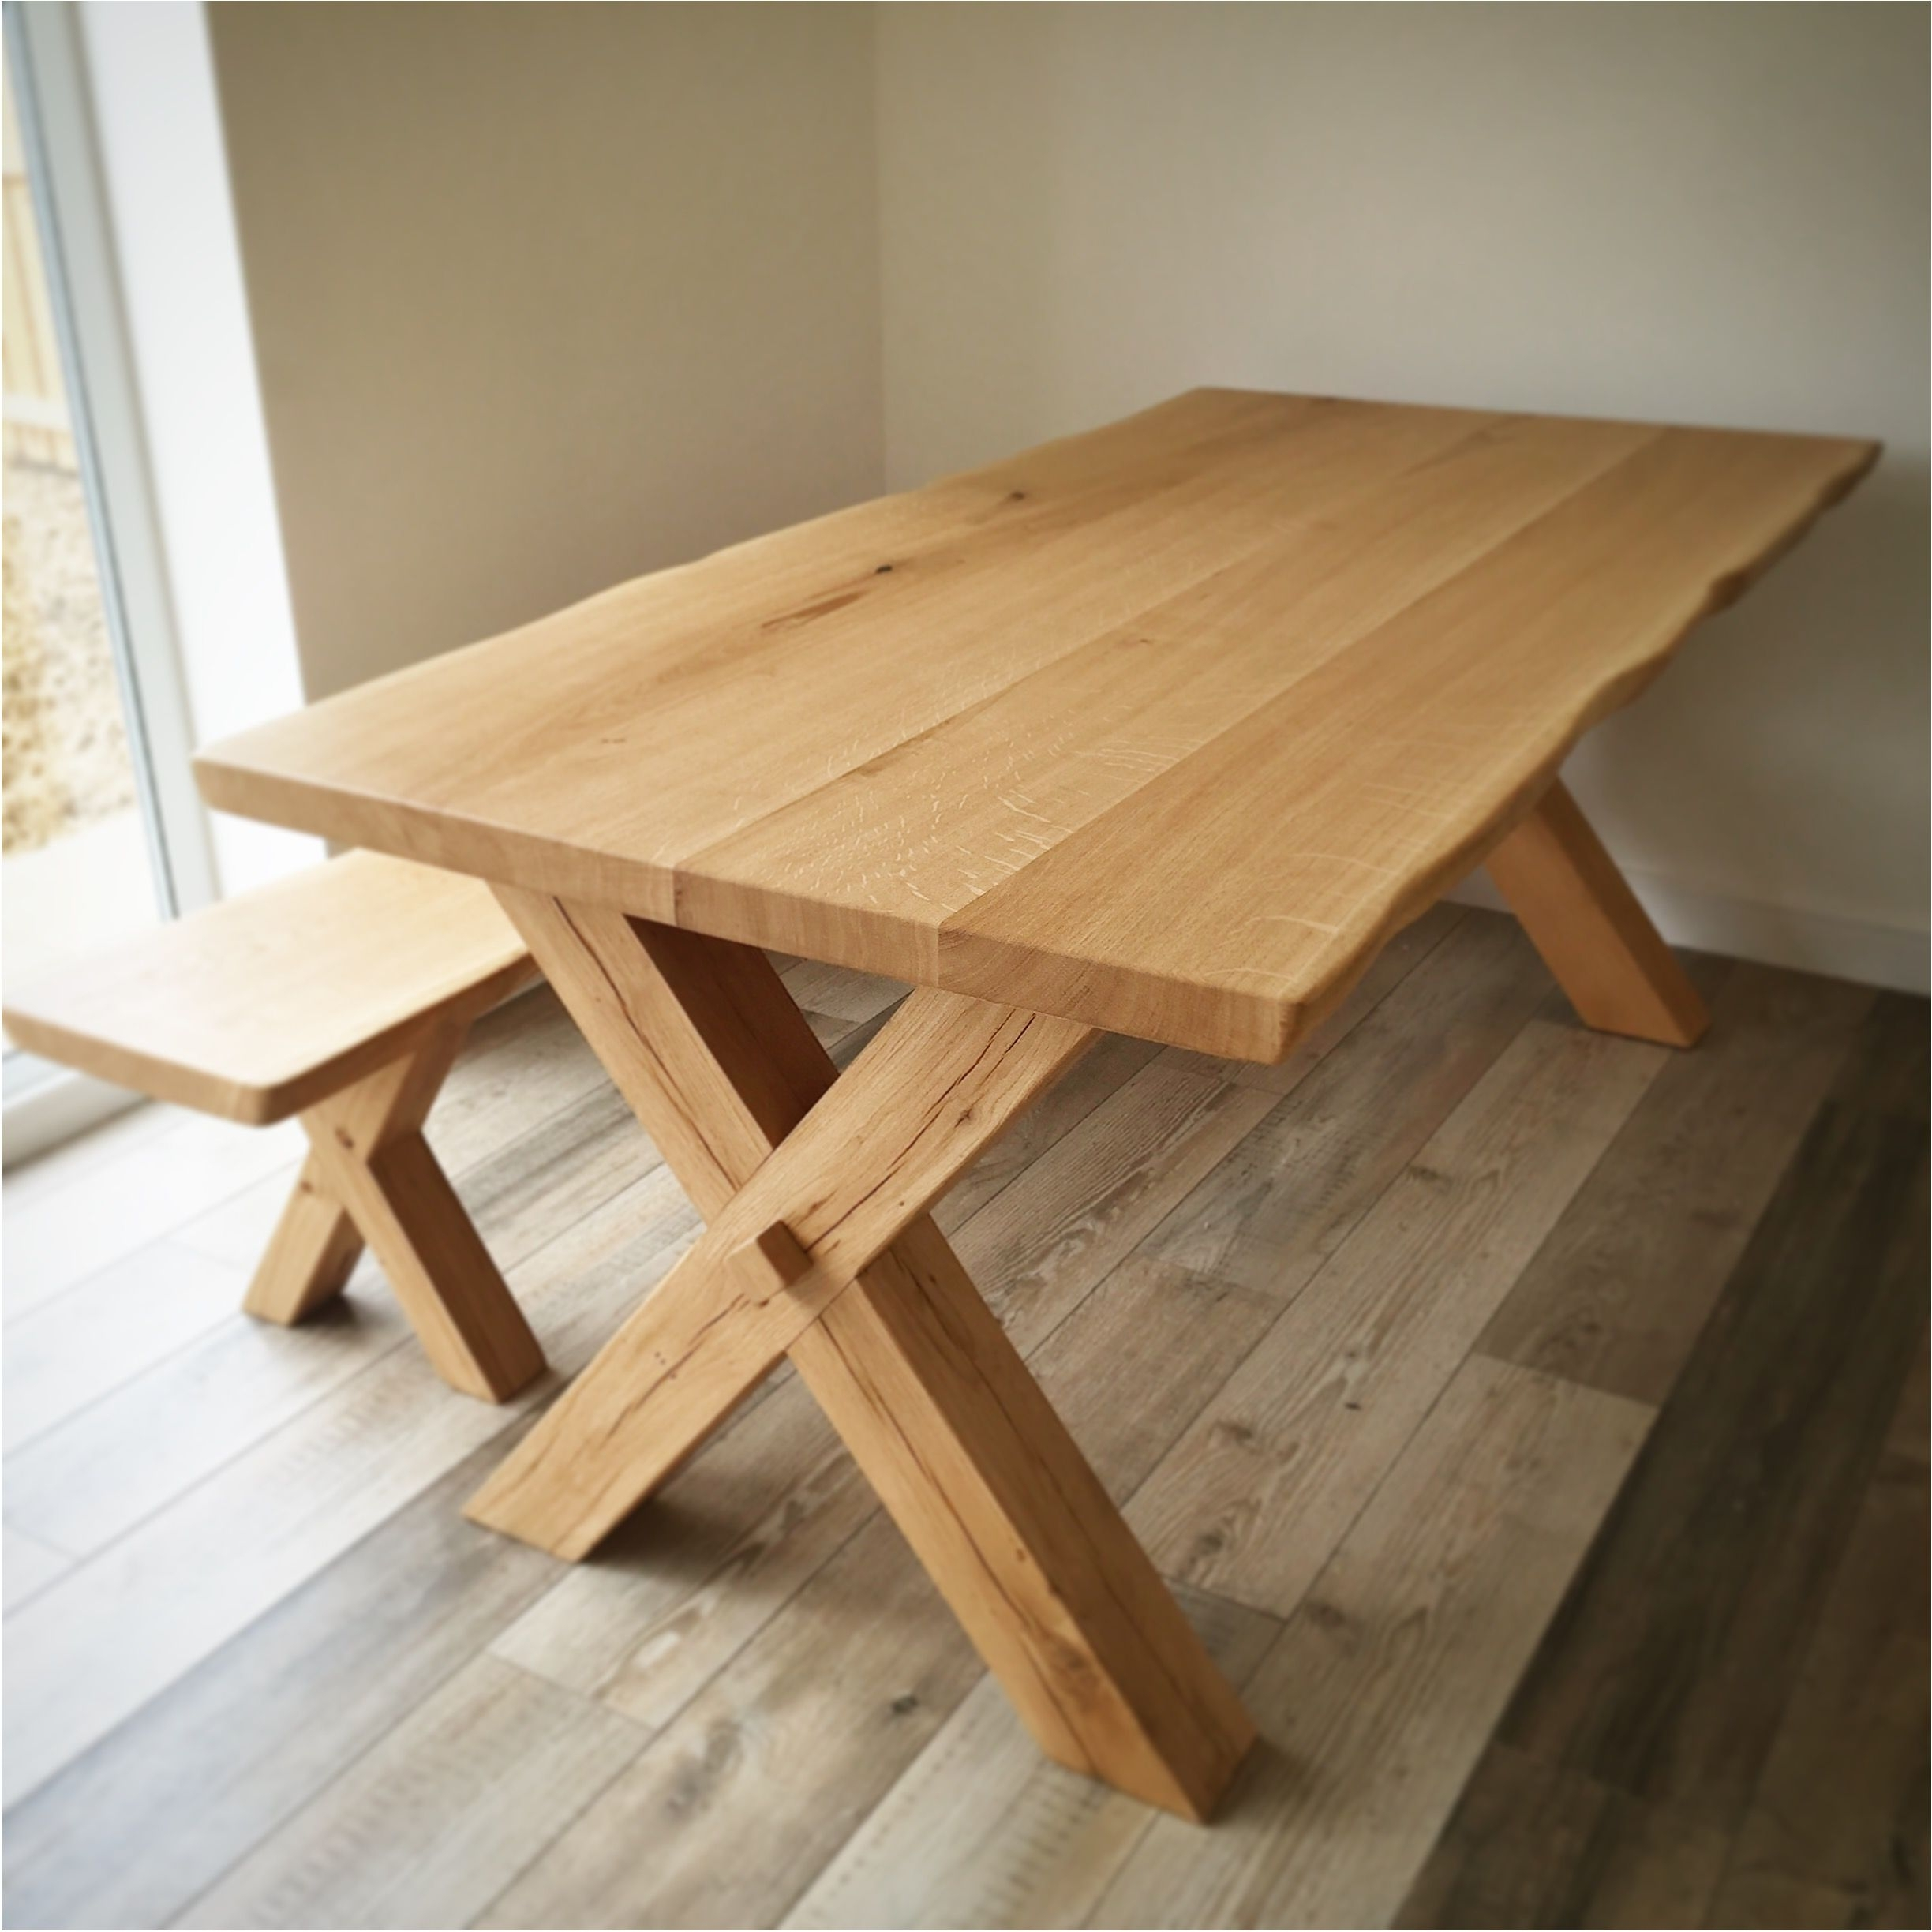 Preferred Excellently Solid Oak Dining Table Cross Leg Design Handmade In The Within Chunky Solid Oak Dining Tables And 6 Chairs (View 18 of 25)